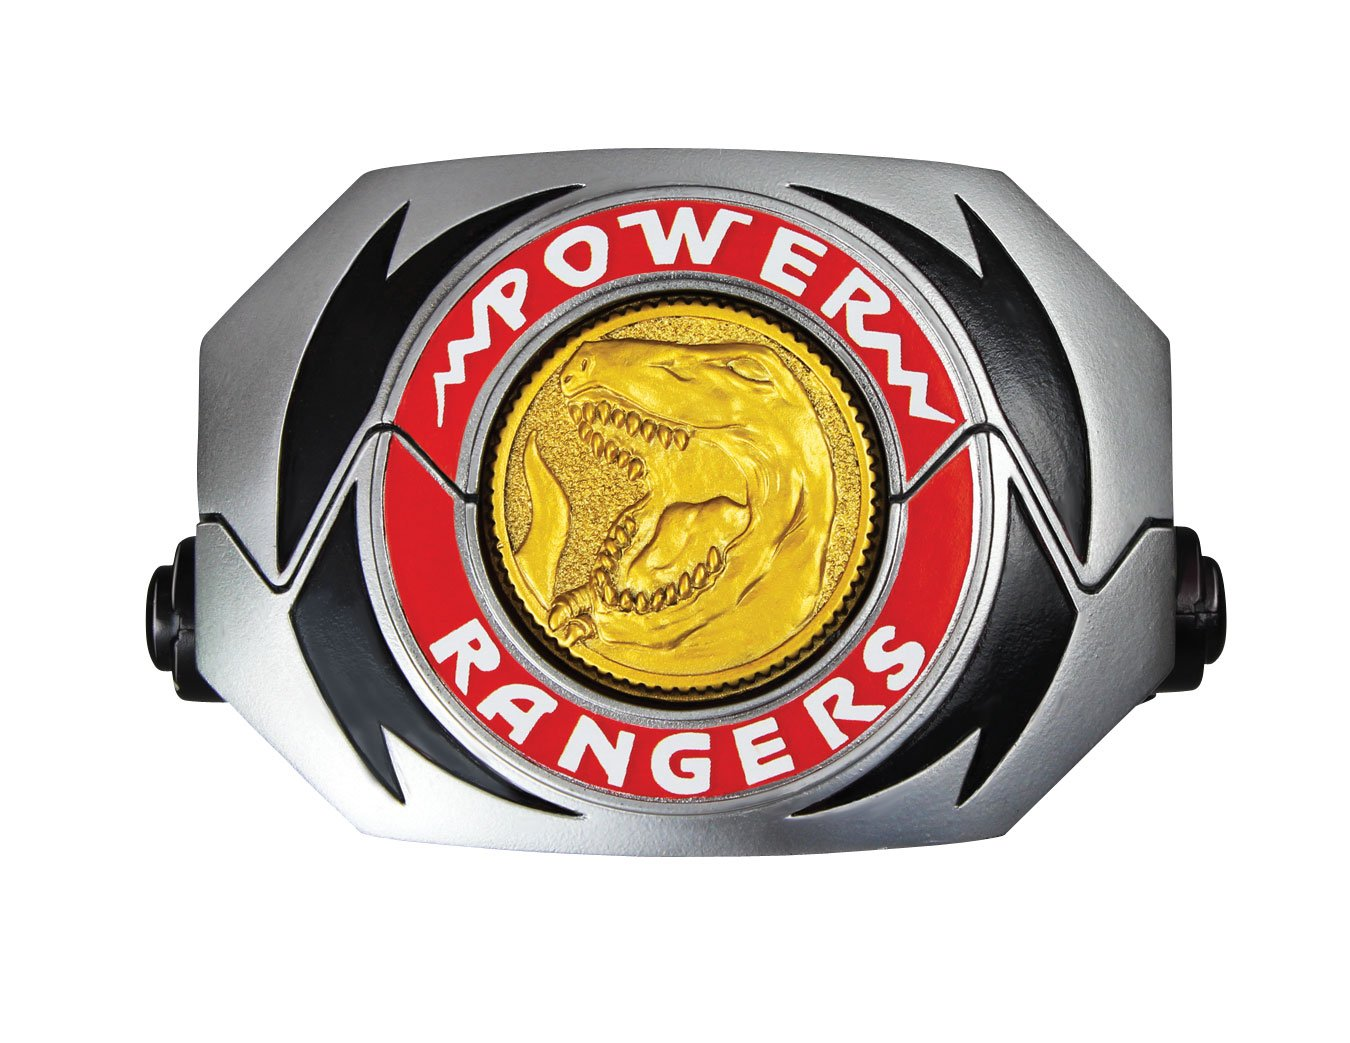 Power Rangers Mighty Morphin Legacy Edition Morpher 96609